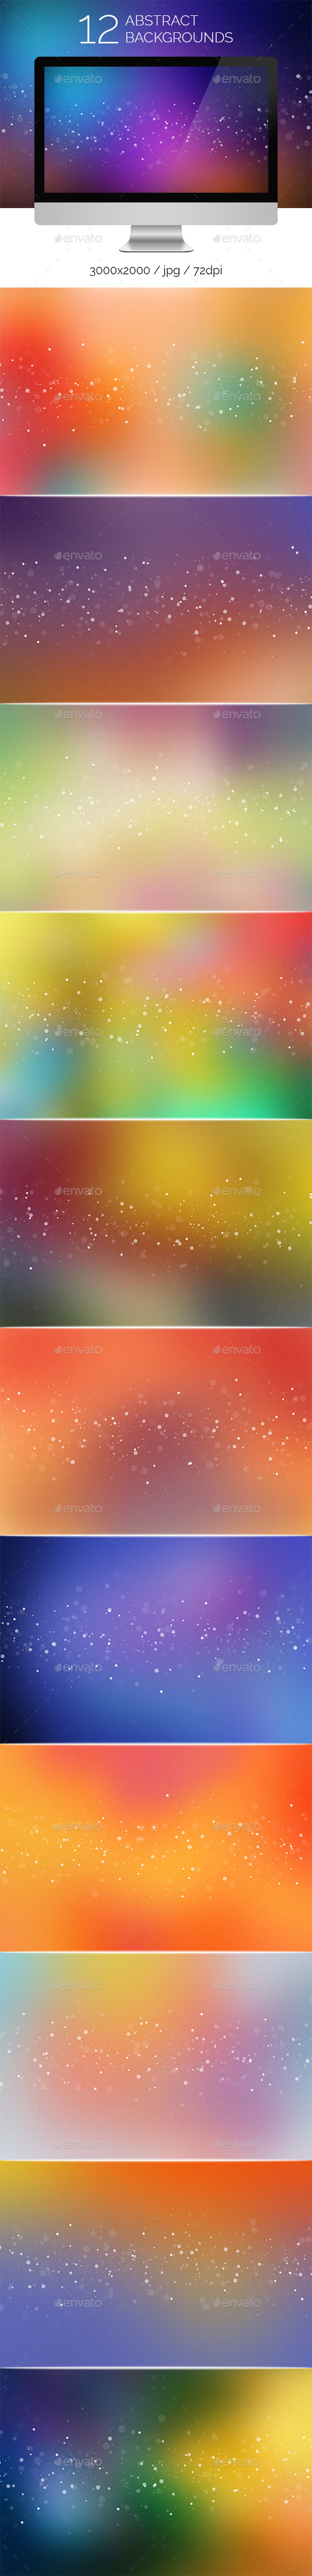 12 Abstract Backgounds - Abstract Backgrounds